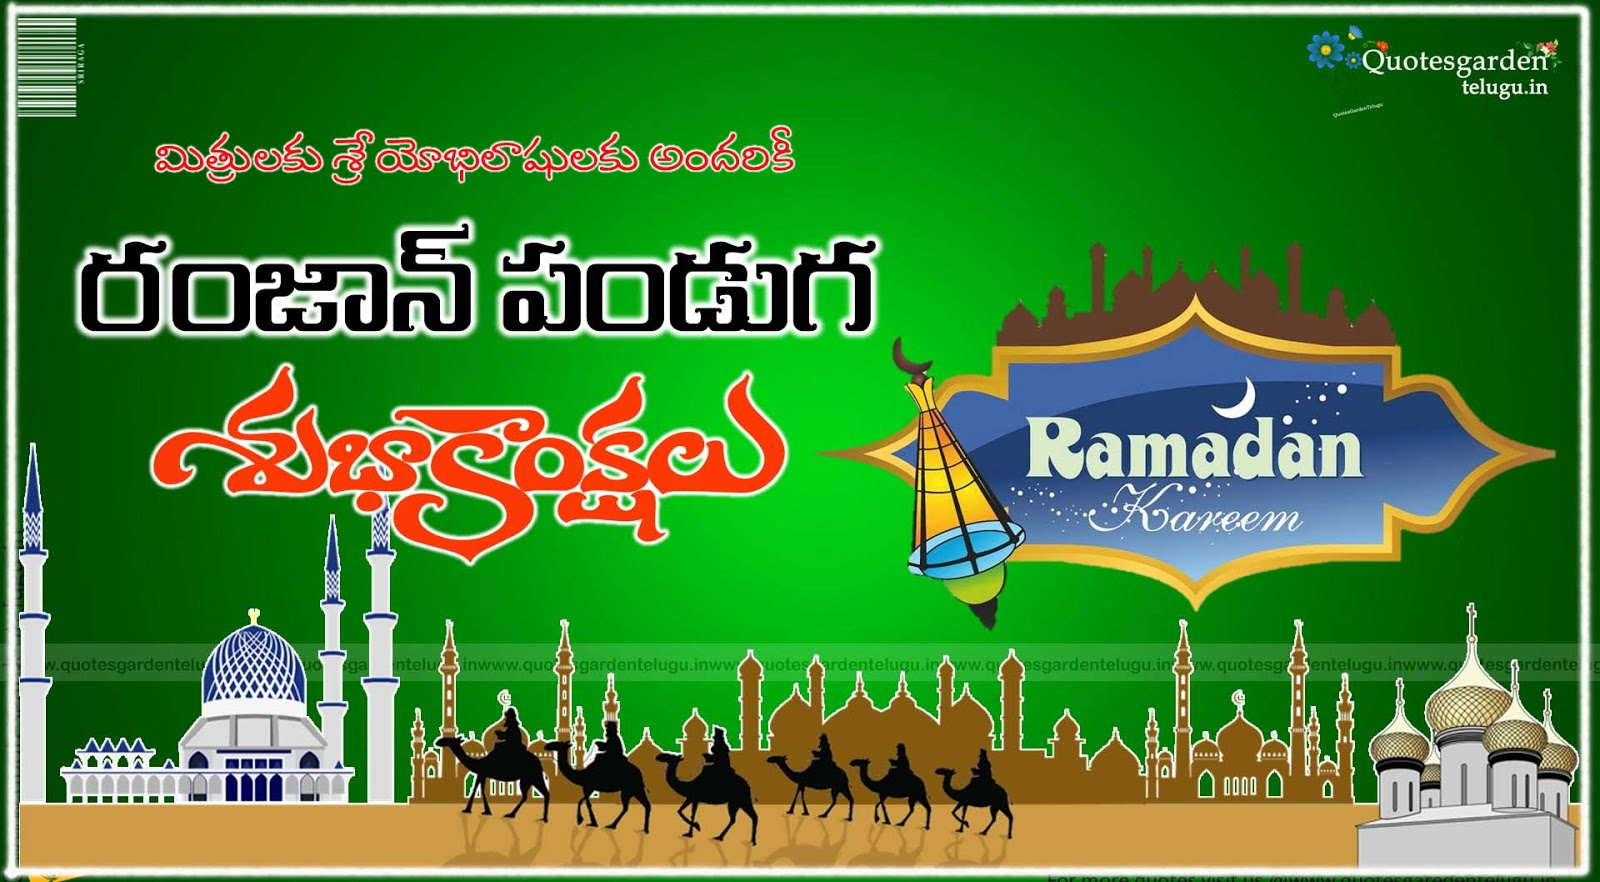 Best Of Ramzan Greetings Quotes Wishes Quotes Garden Telugu